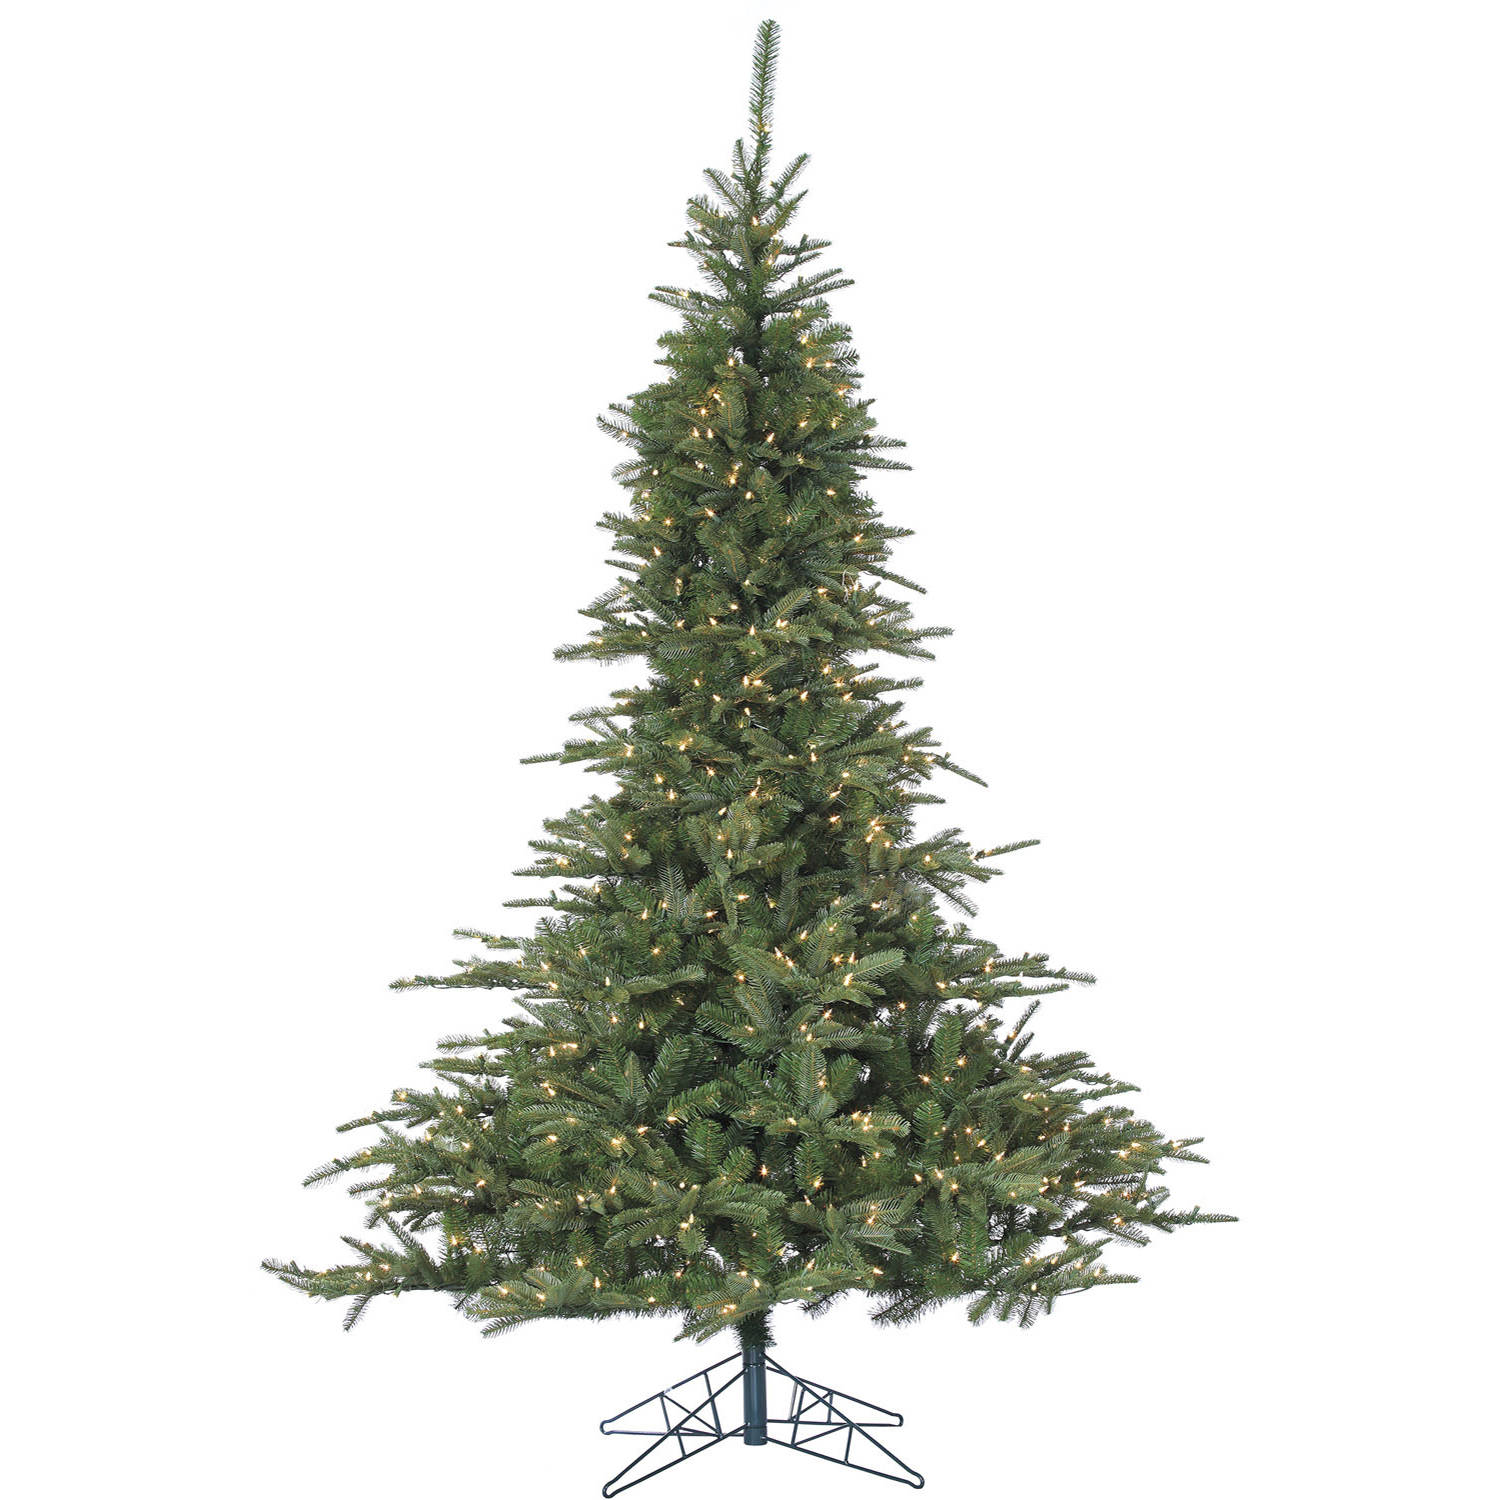 Fraser Hill Farm Pre-Lit 7.5' Cluster Pine Artificial Christmas Tree with Clear LED String Lighting